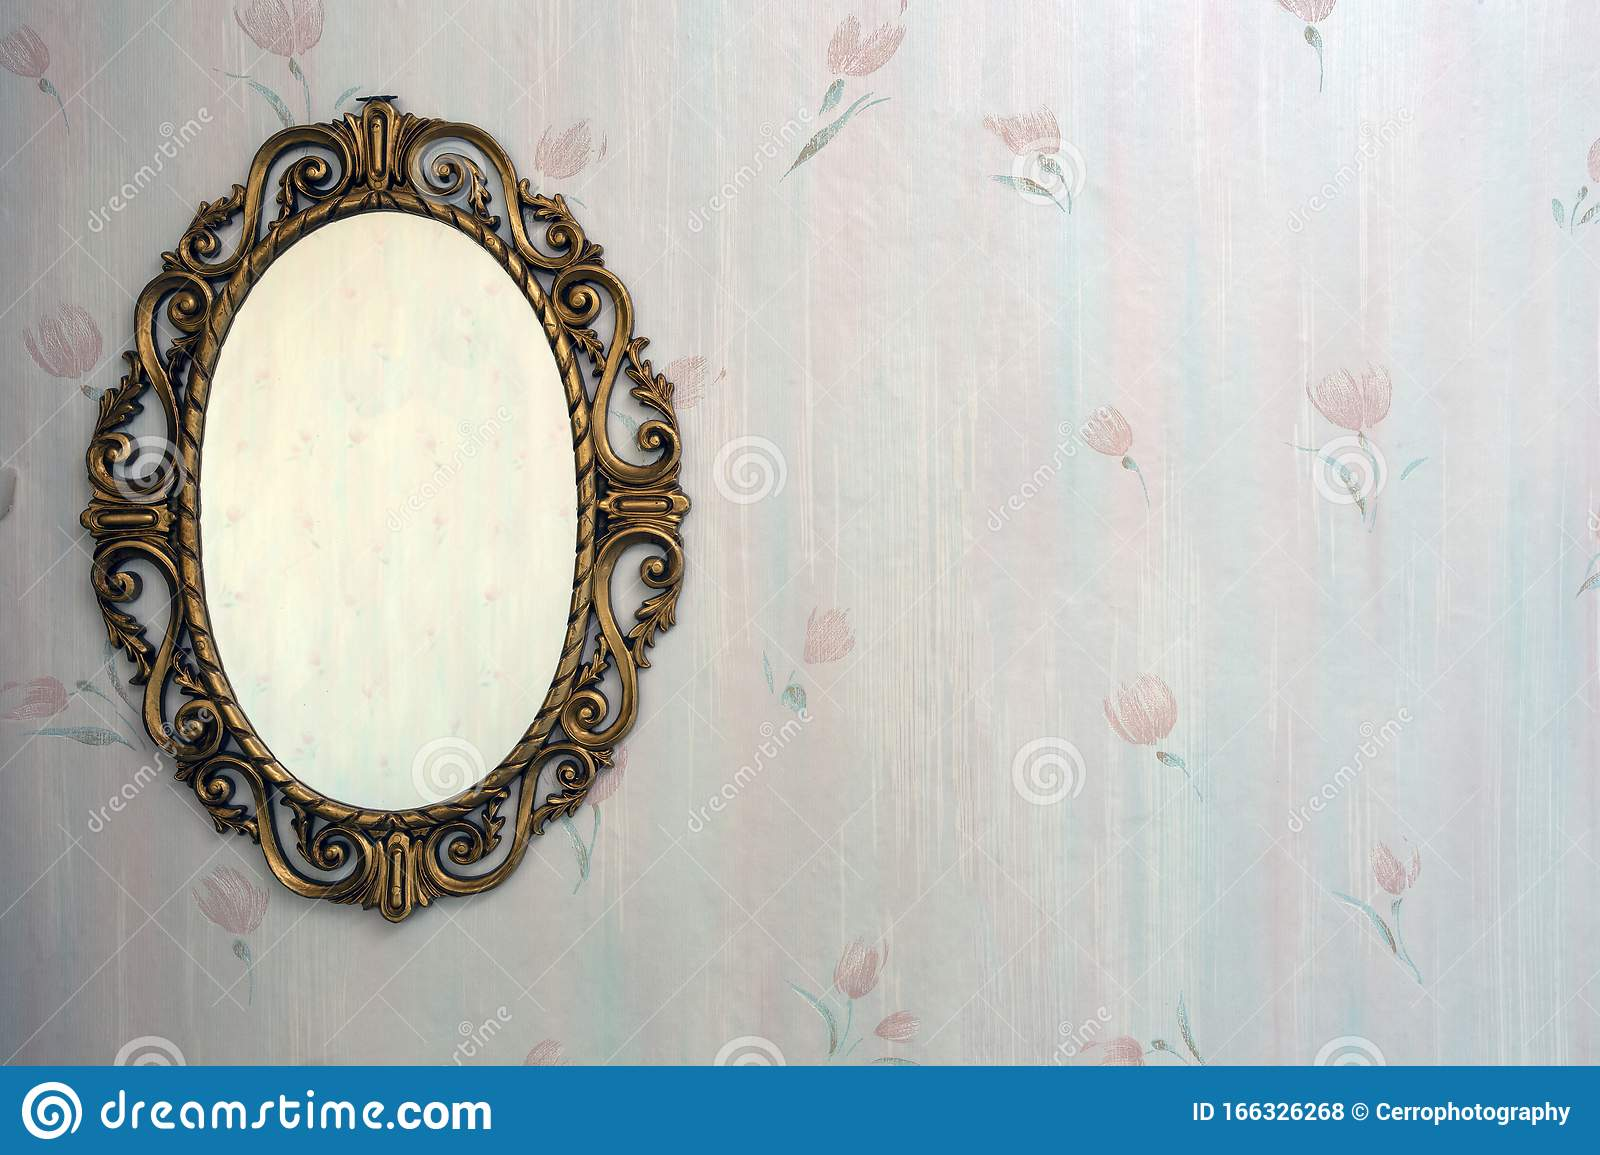 Old Antique Gold Mirror Hanging In A Vintage Room With Old ...